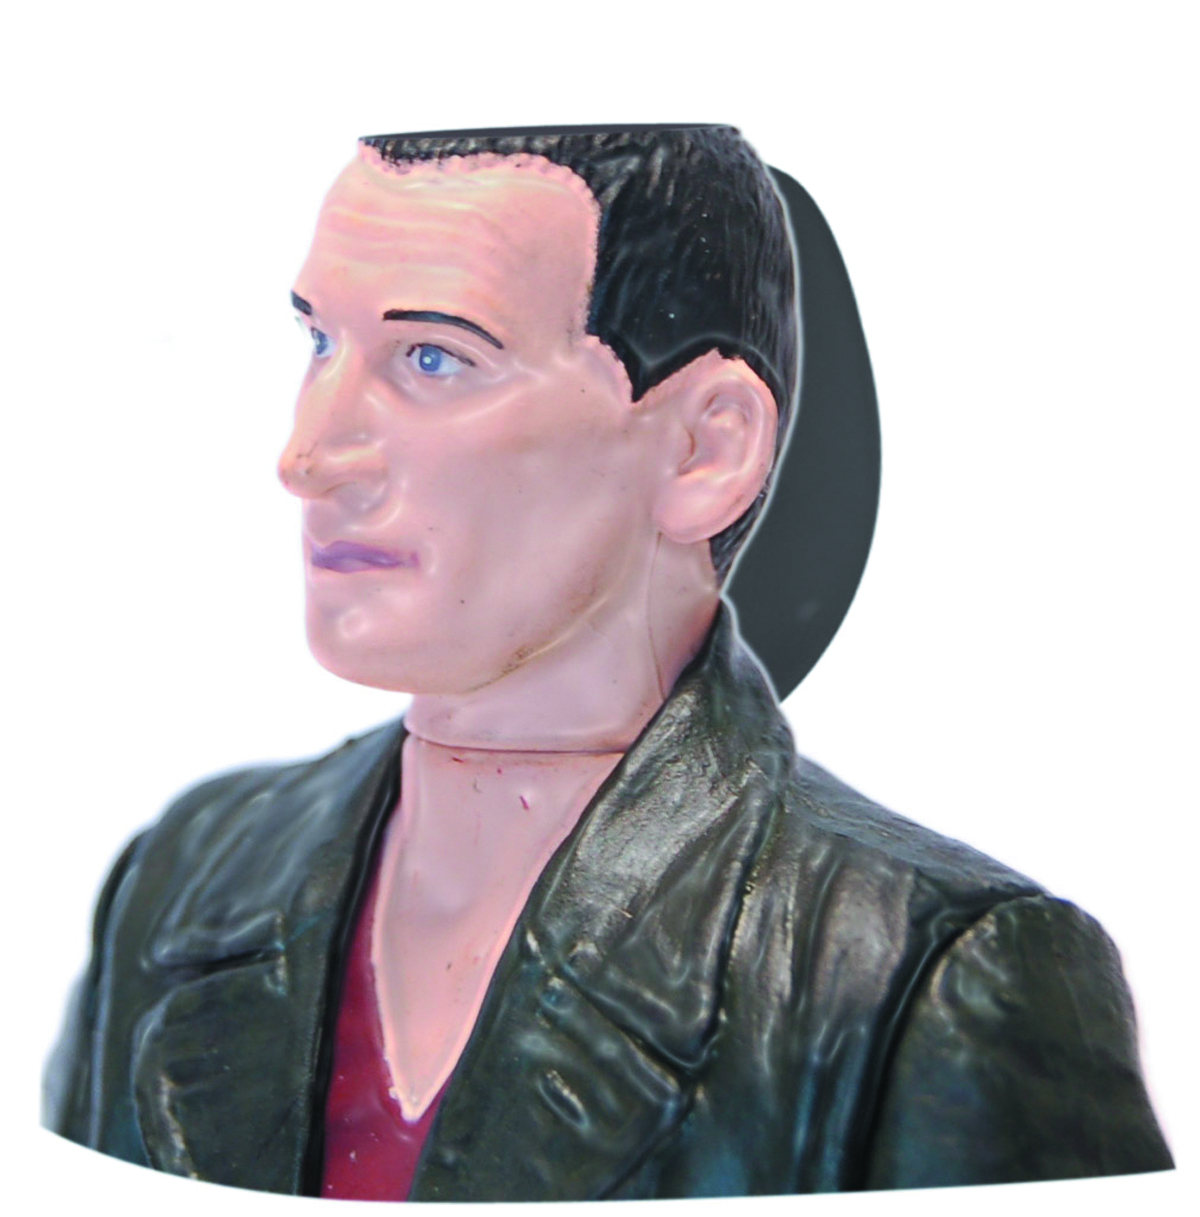 DOCTOR WHO 9TH DOCTOR FIGURAL MUG